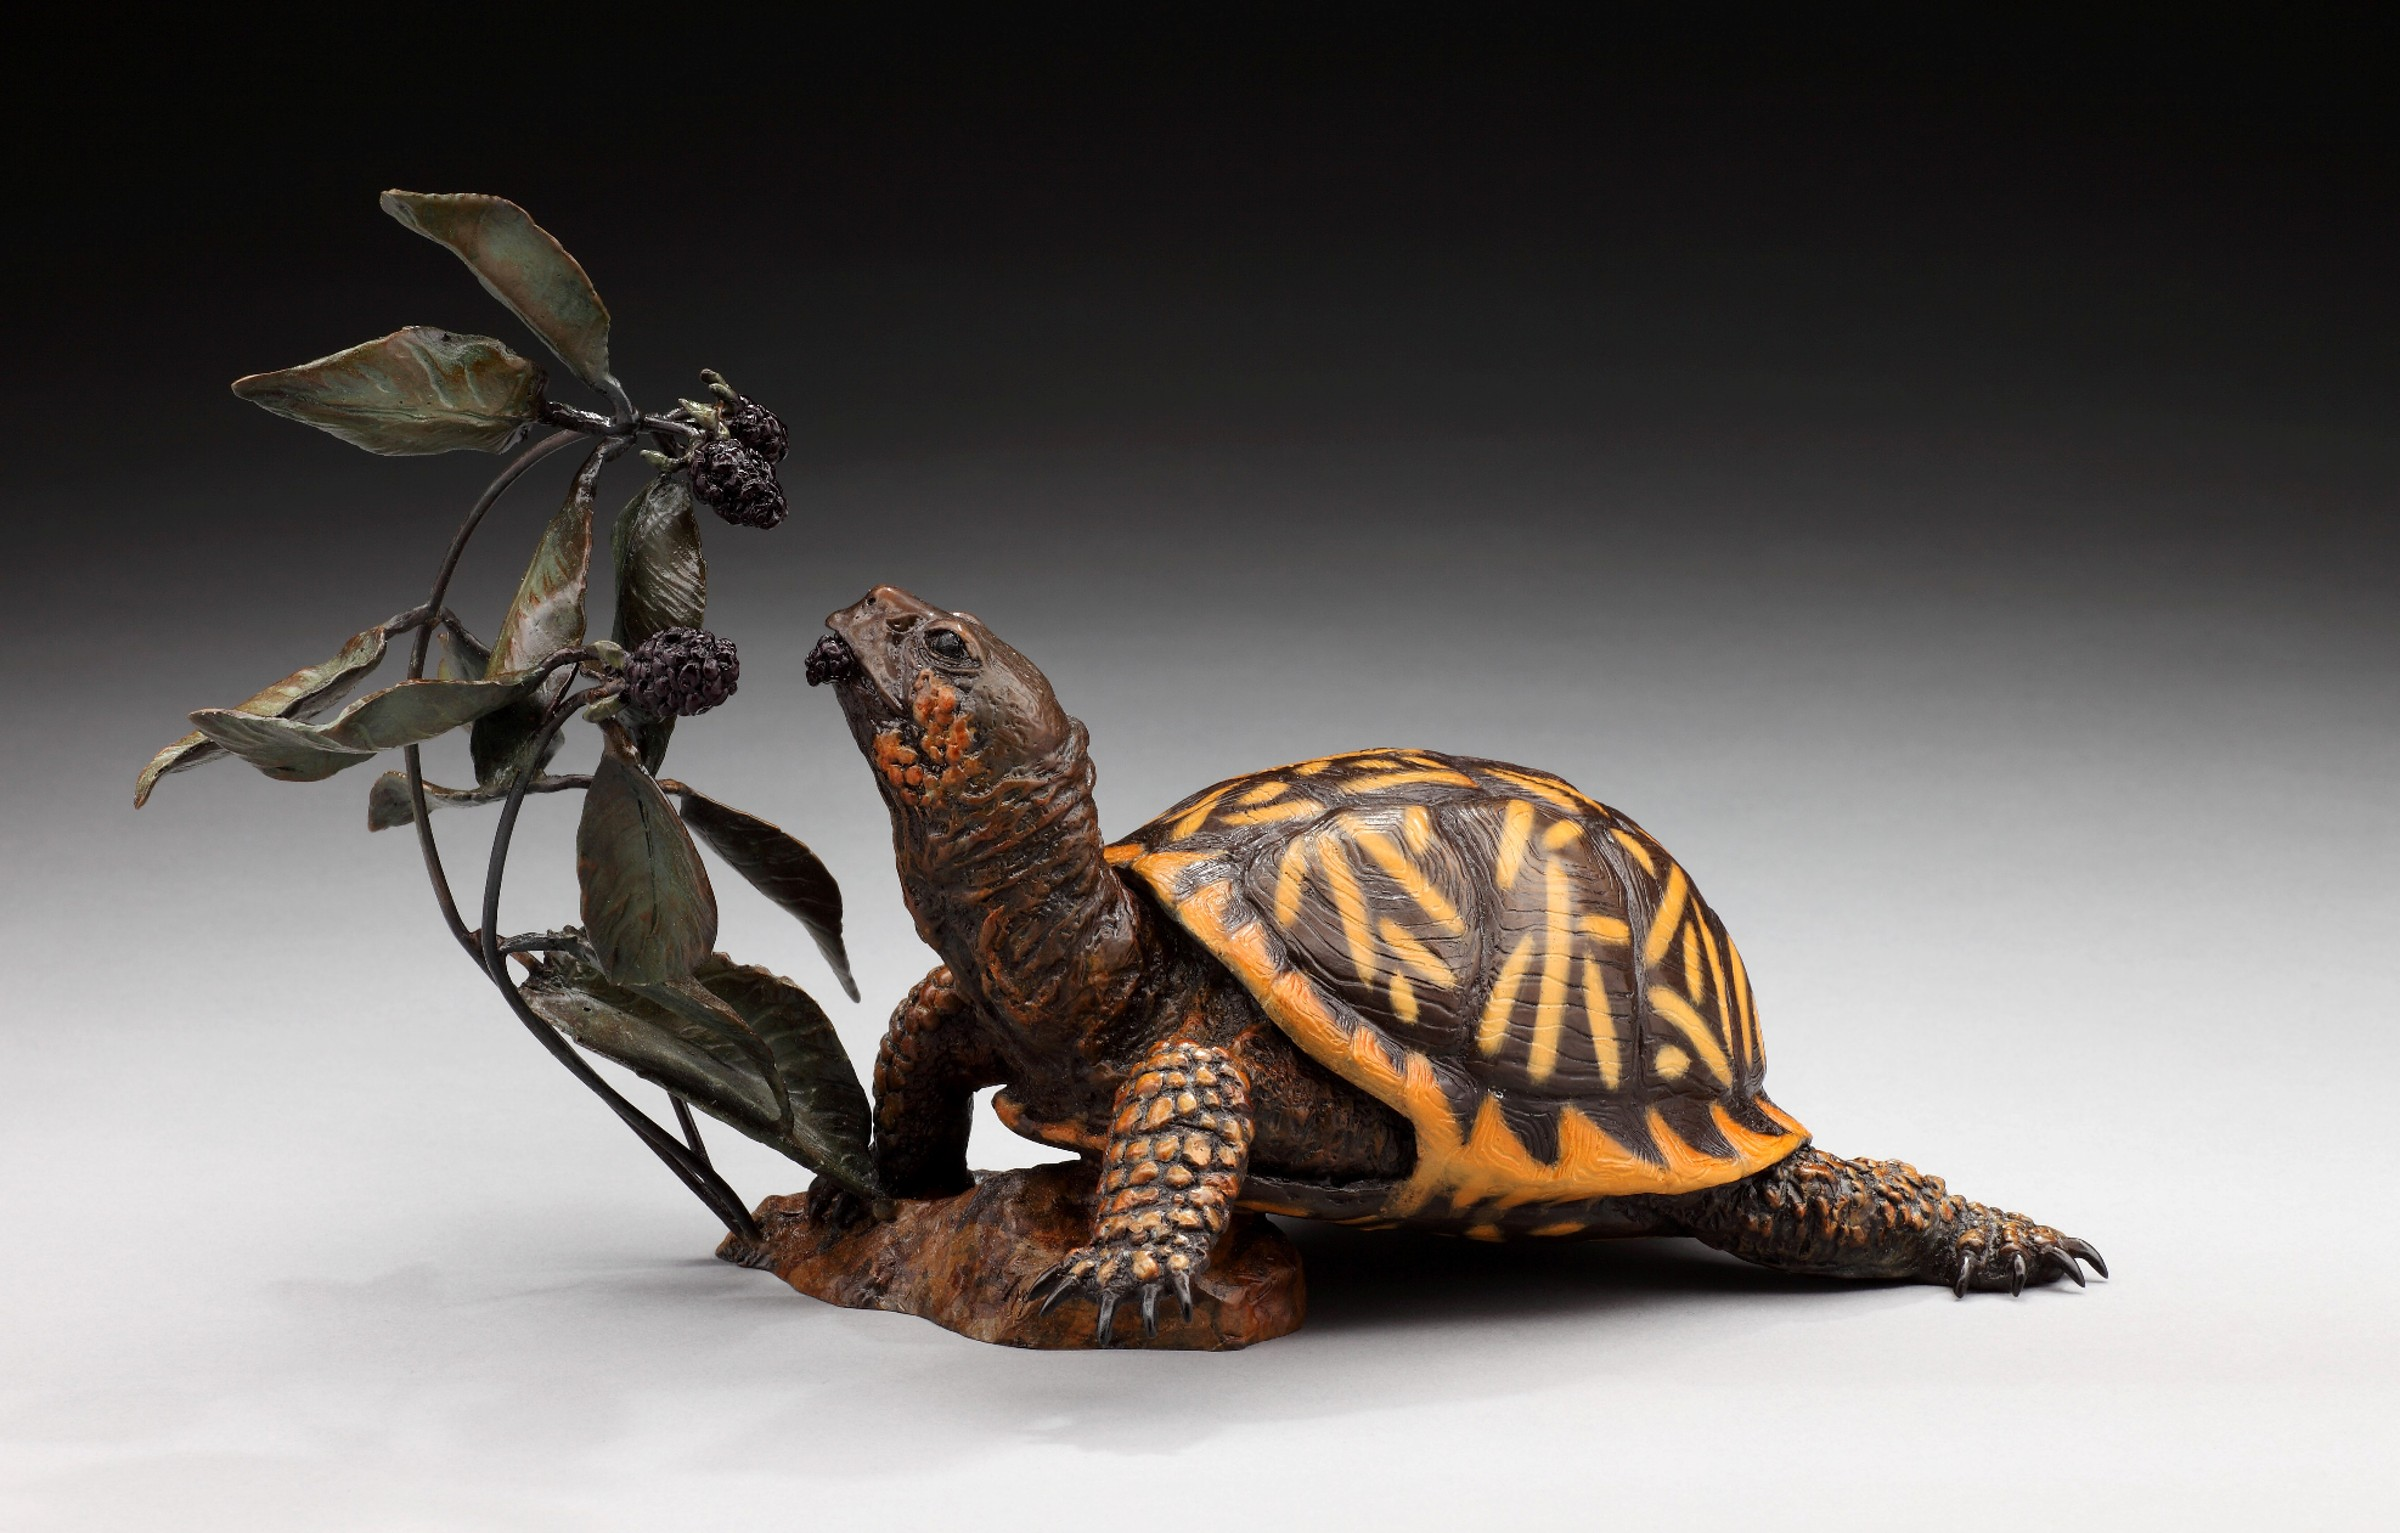 Blackbery Bliss - Diane Mason - Box Turtle